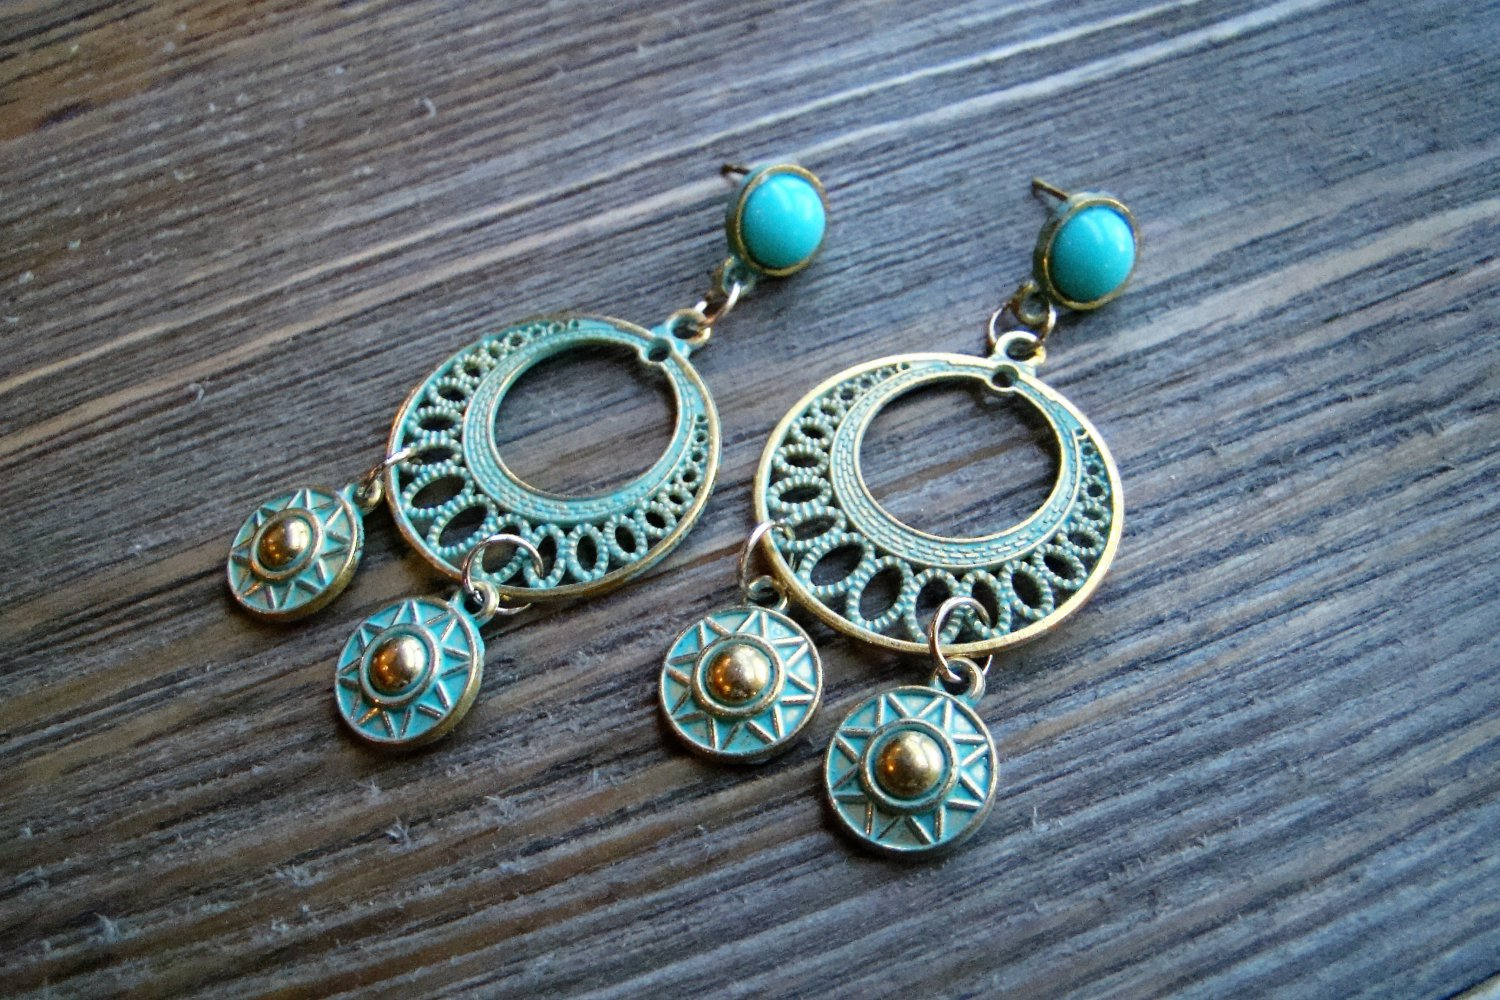 Aztec Chandelier Earrings Gold Tone Turquoise Pantina Blue Stud Gypsy Boho Fashion Jewelry